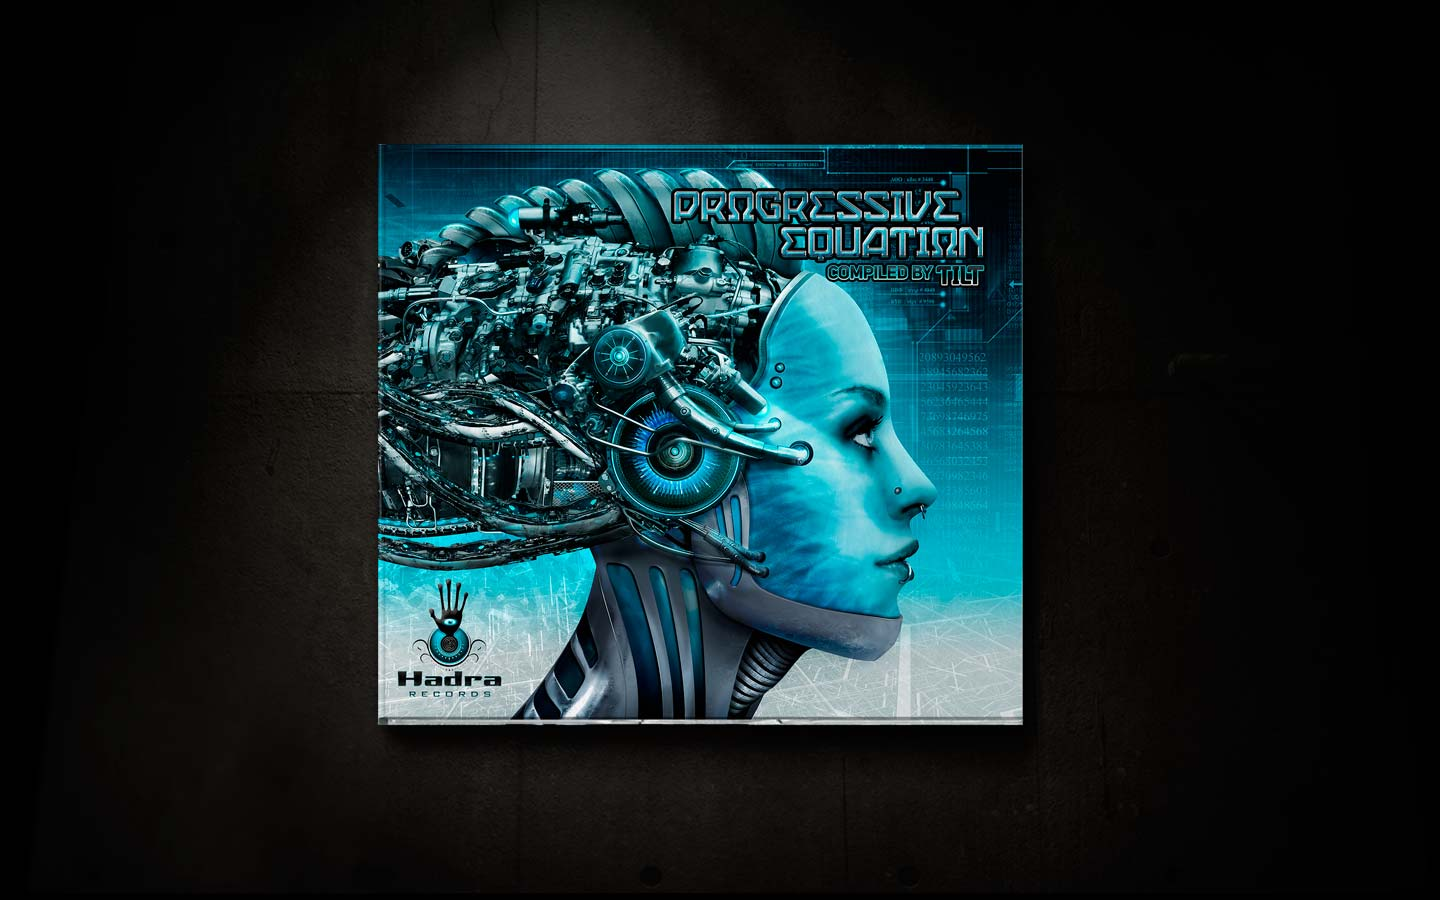 Tilt - Progressive Equation - Laurent Lemoigne - Donanubis - Don Anubis - Graphic Design - Logo Design - Cd Cover — Digipack -  Hadra - Psy Trance - Goa - Prog - Art - Music - Industrial - Dark - Mechanic - Factory - Rust -  Biomechanic - Biomechanik - Biomechanoid - Giger  - Cyborg - Robot - Robotic - Sci fi - Beautiful - Woman - Alternative - Underground - Geneva - Switzerland